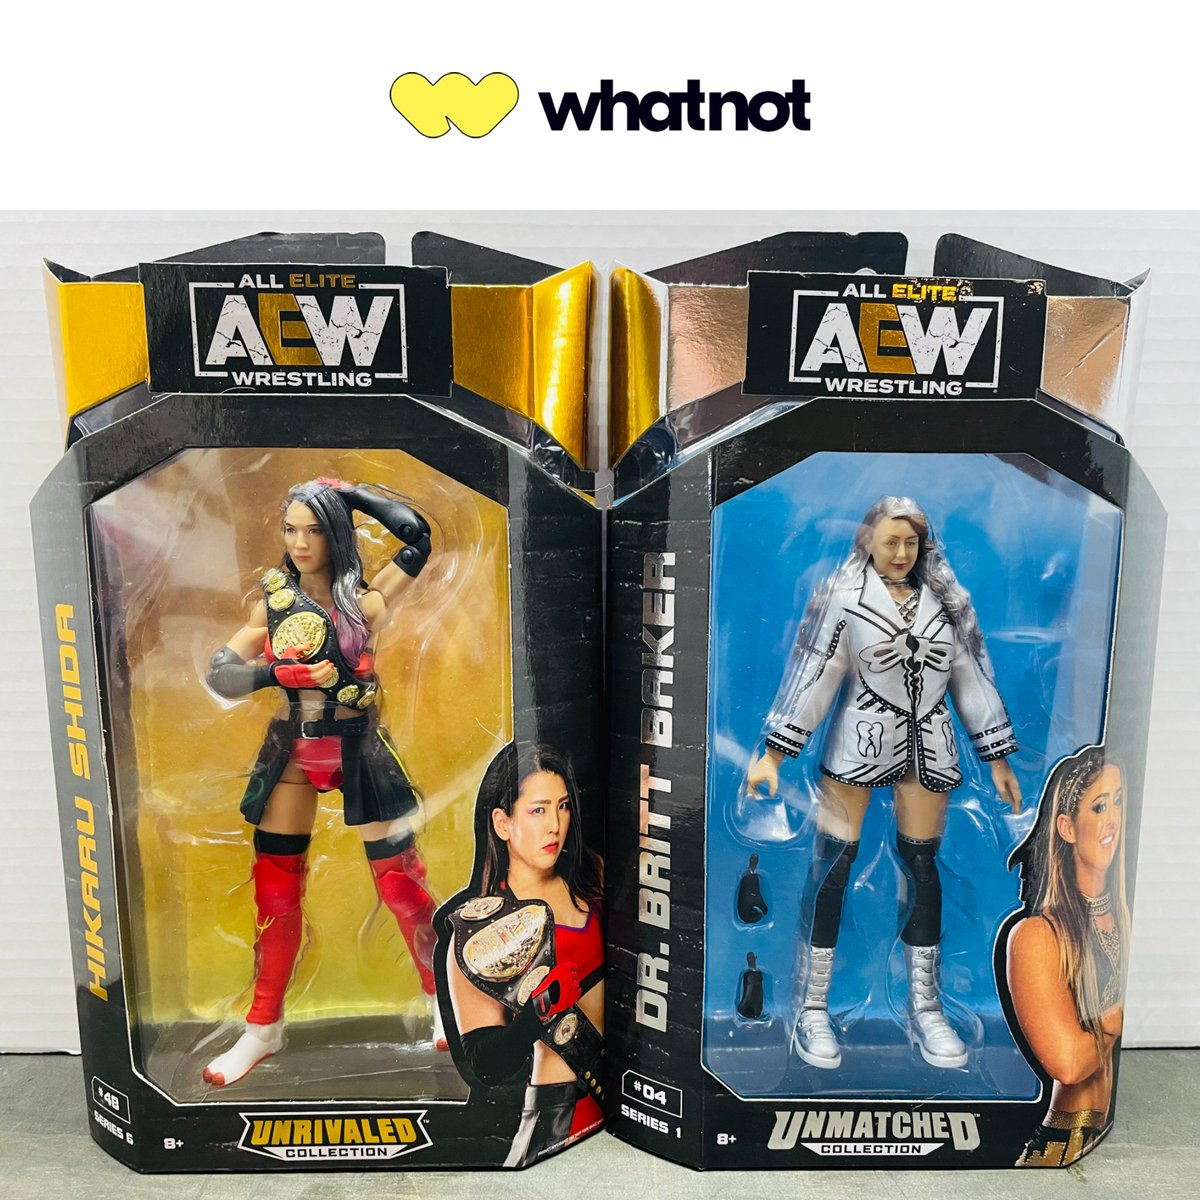 Looking for AEW figs? Check out @Whatnot, the go-to destination for live action figure & toy auctions! Mon. 10/25 @ 9:30pm ET, 30+ AEW figures will be up for auction on empire_of_awesome's page, with many starting at just $1! Get the @Whatnot app to buy, sell, & go live today!